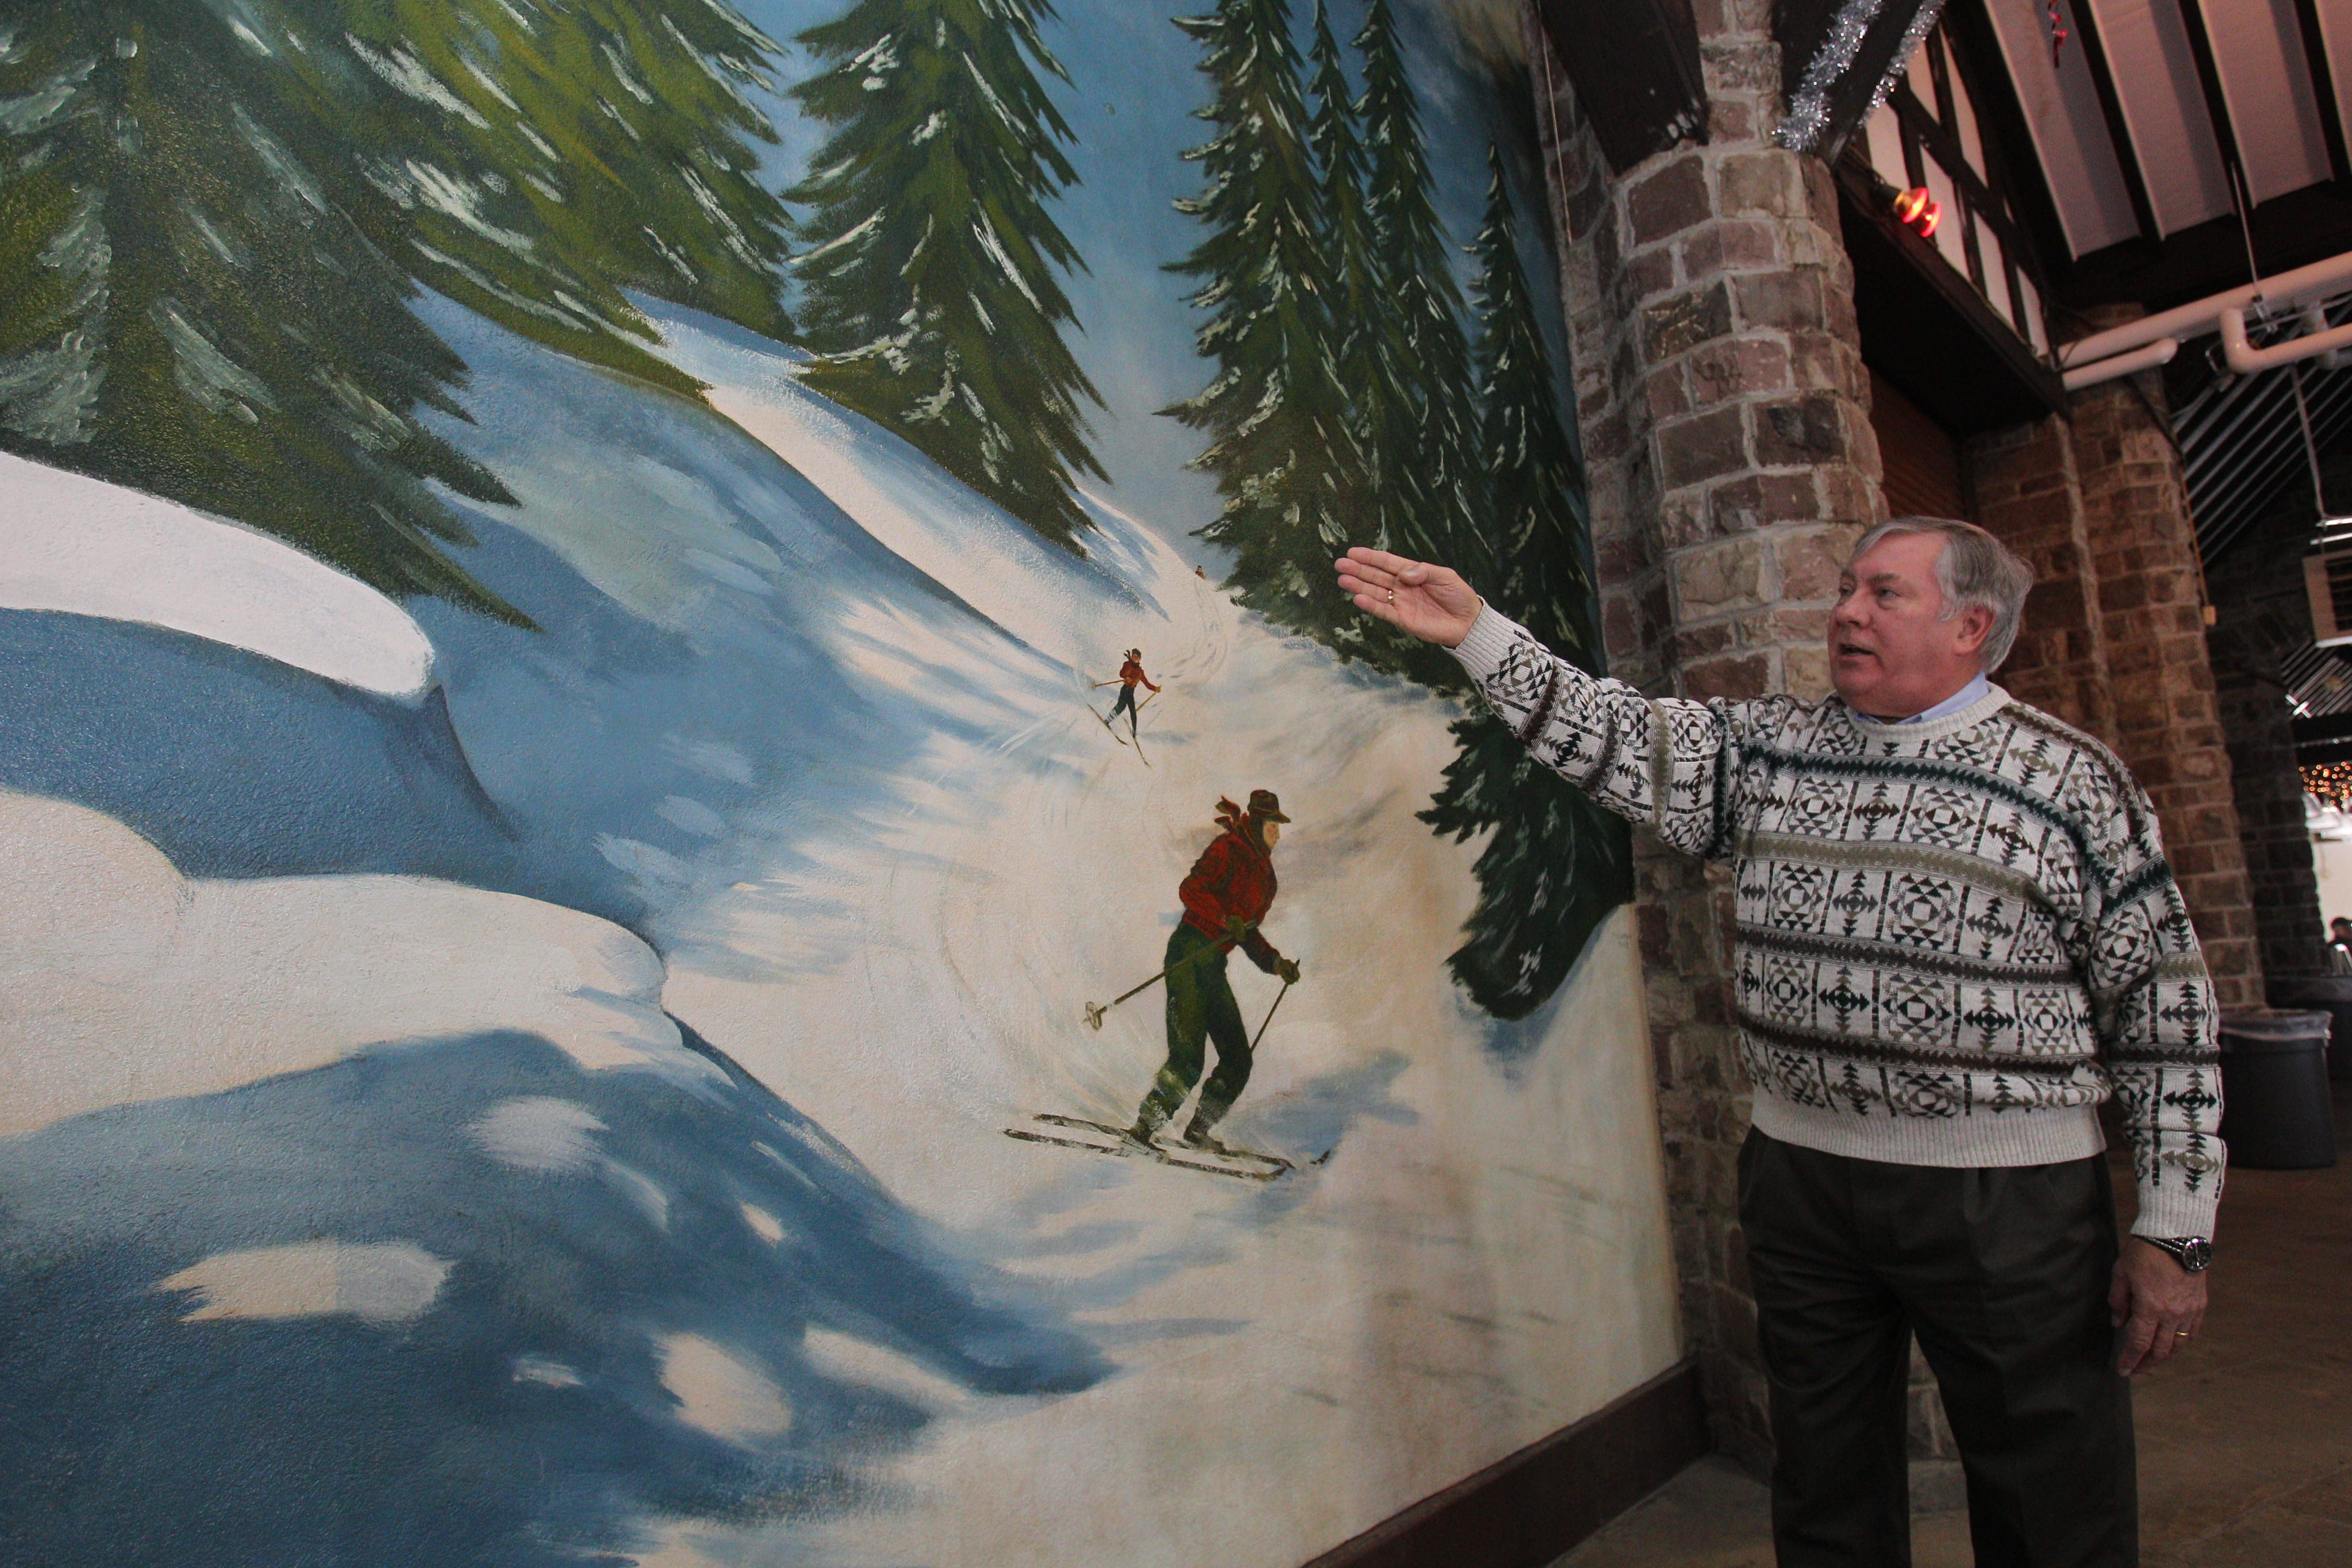 Ronald J. Michnik, founding trustee for the Chestnut Ridge Park Conservancy, says work is underway to restore the five murals painted in the casino by Bernard C. Feldman in 1948.